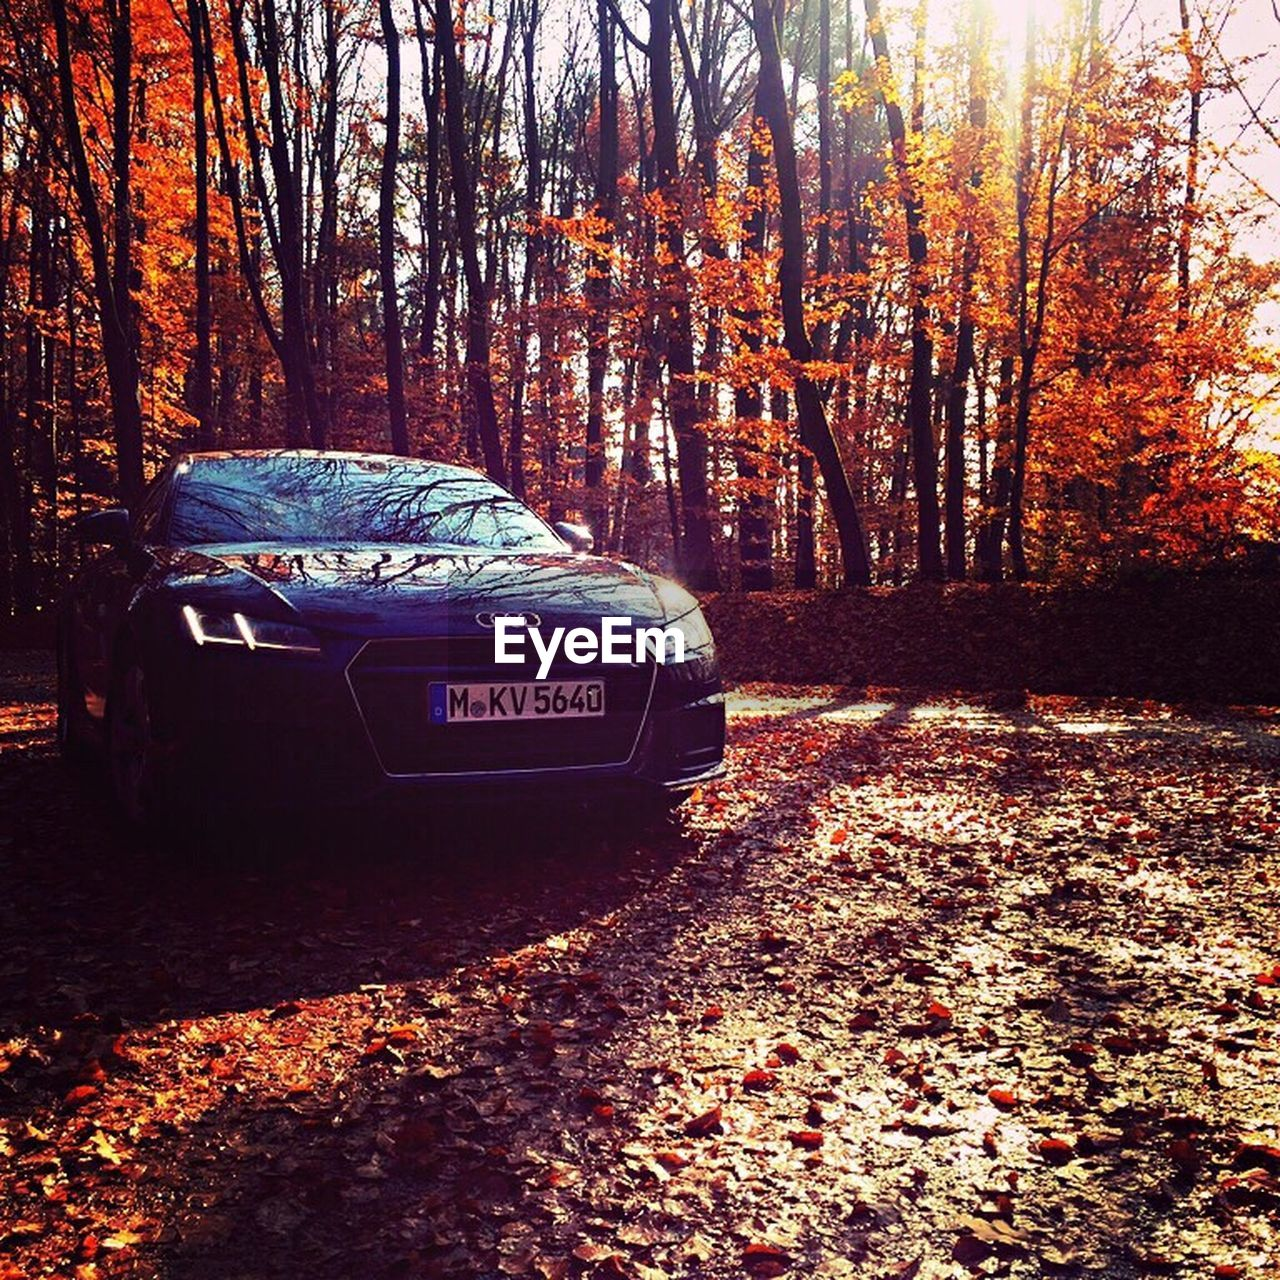 autumn, tree, change, car, leaf, forest, transportation, sunlight, land vehicle, outdoors, day, no people, nature, tree trunk